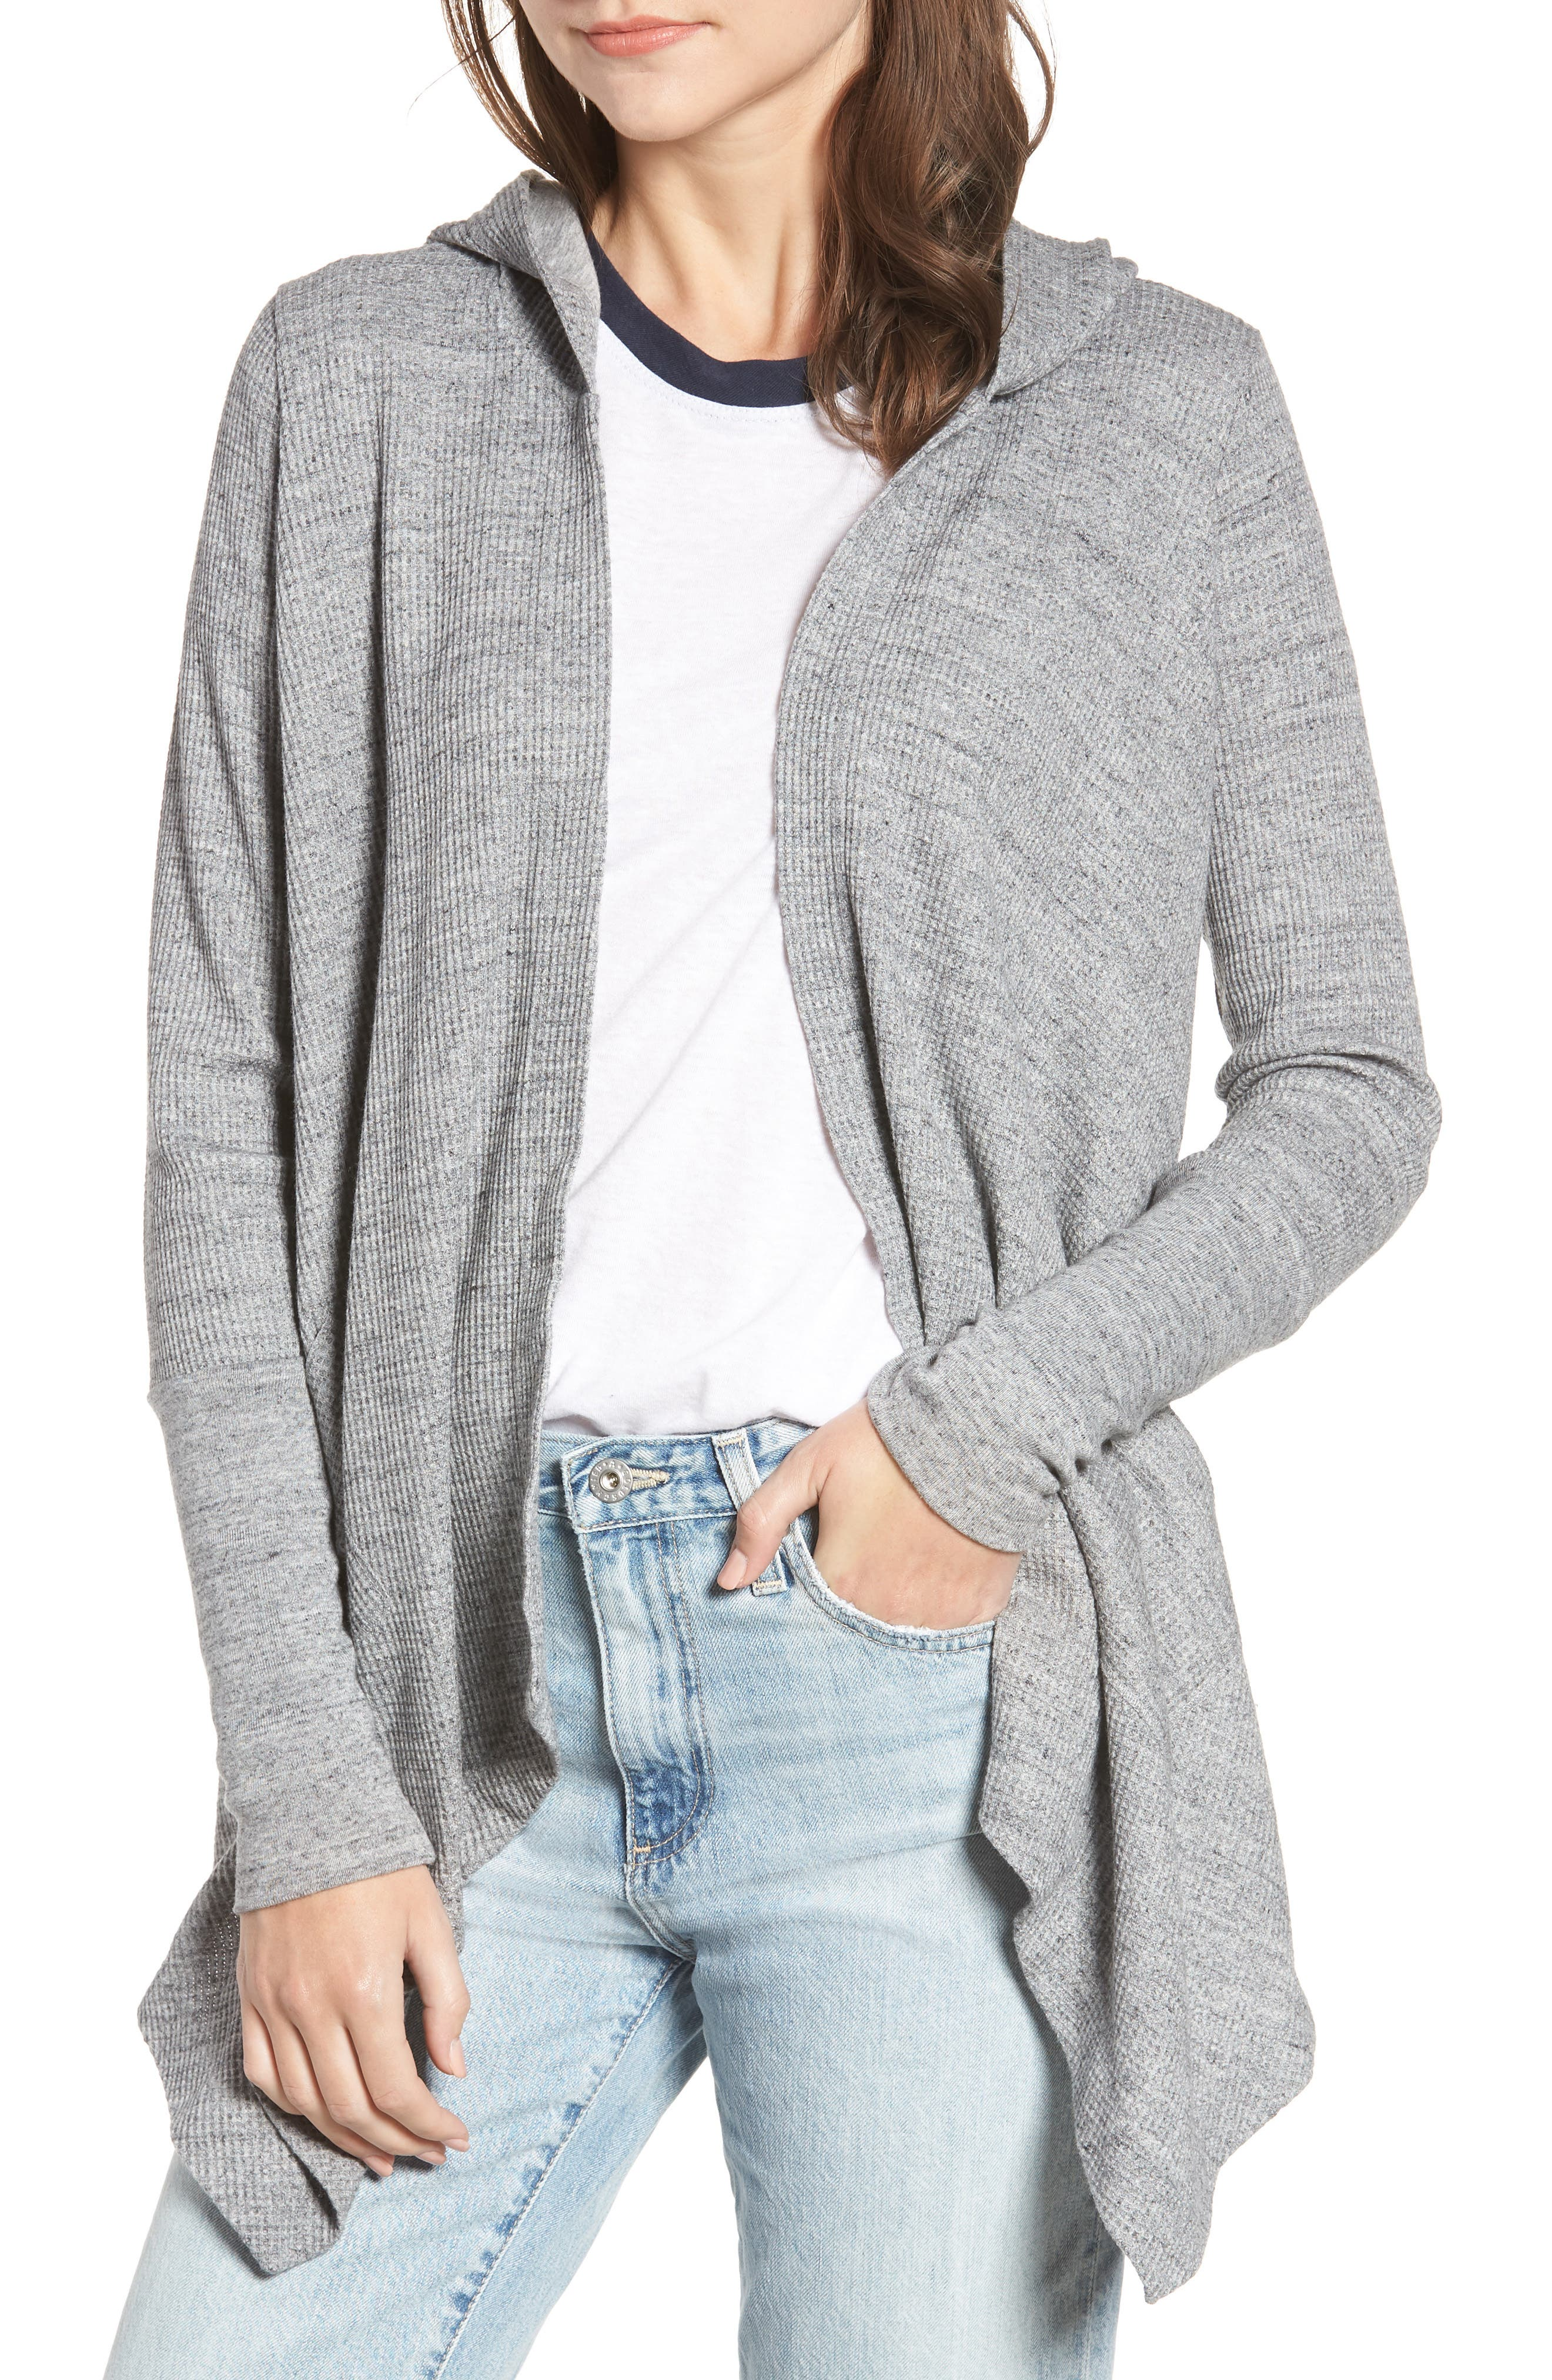 Thermal Hooded Cardigan,                         Main,                         color, GRAVEL HEATHER GREY